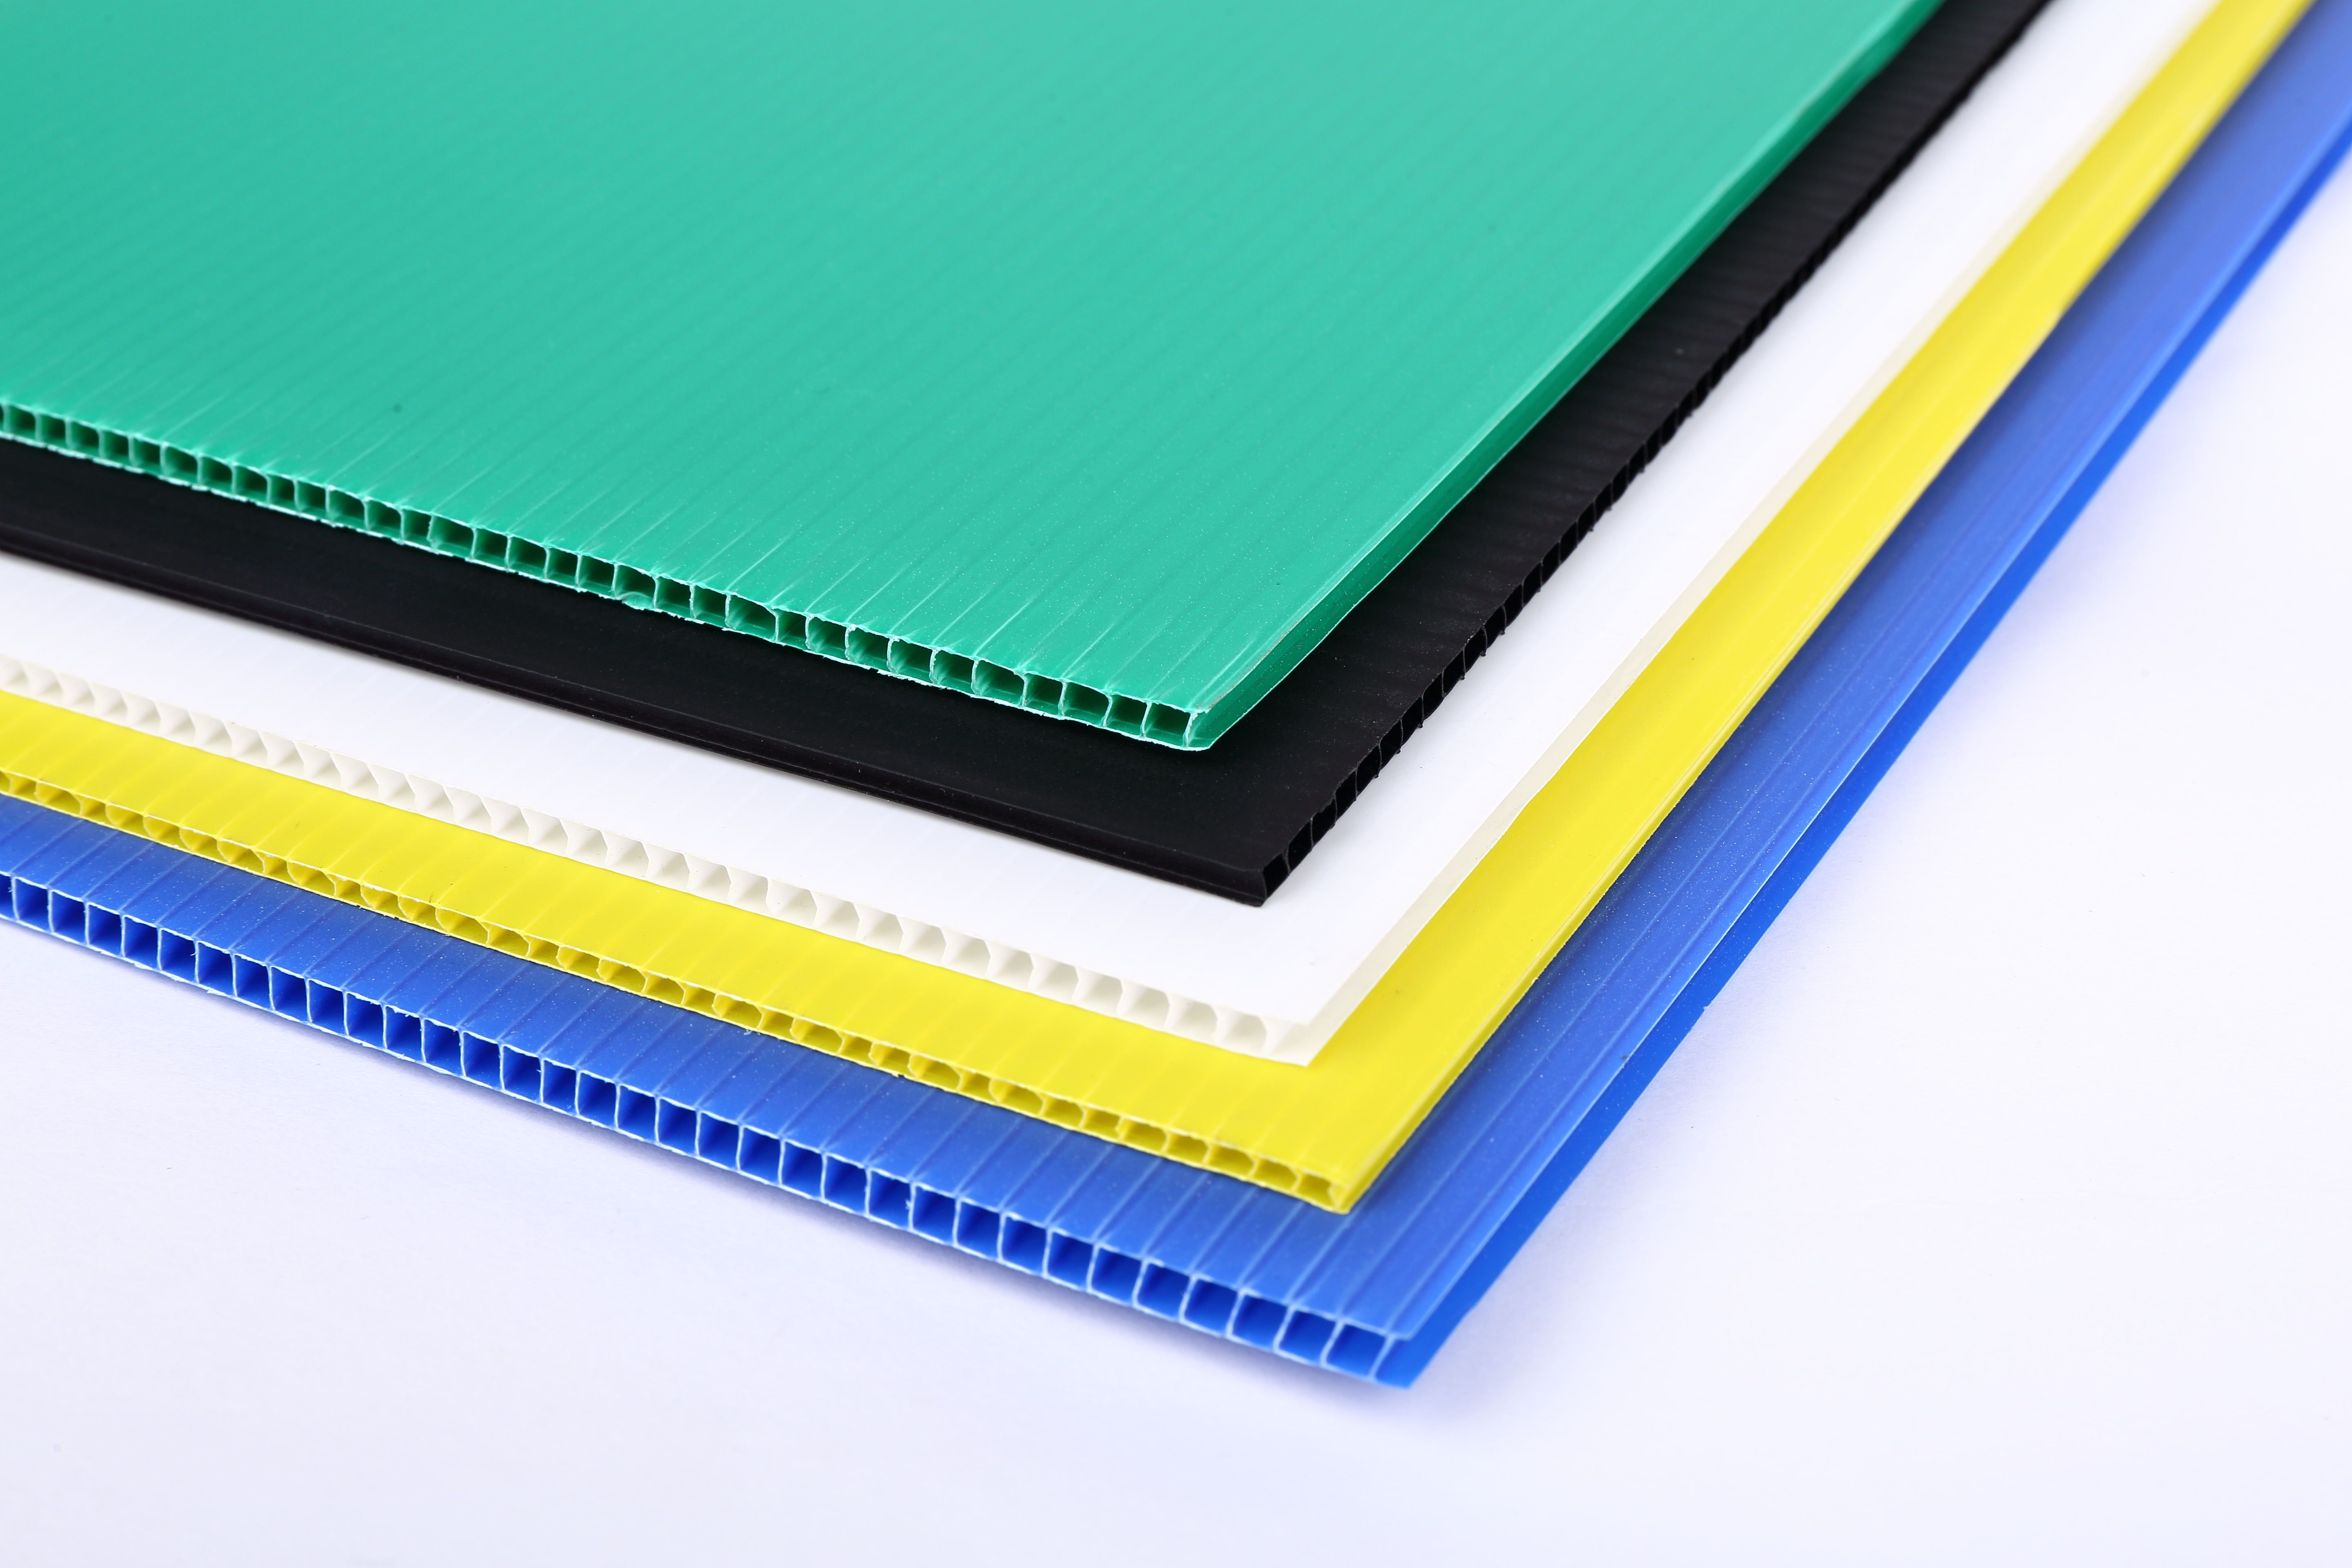 cfc6675fa89 The coroplast sheet is a twin wall profile extrusion